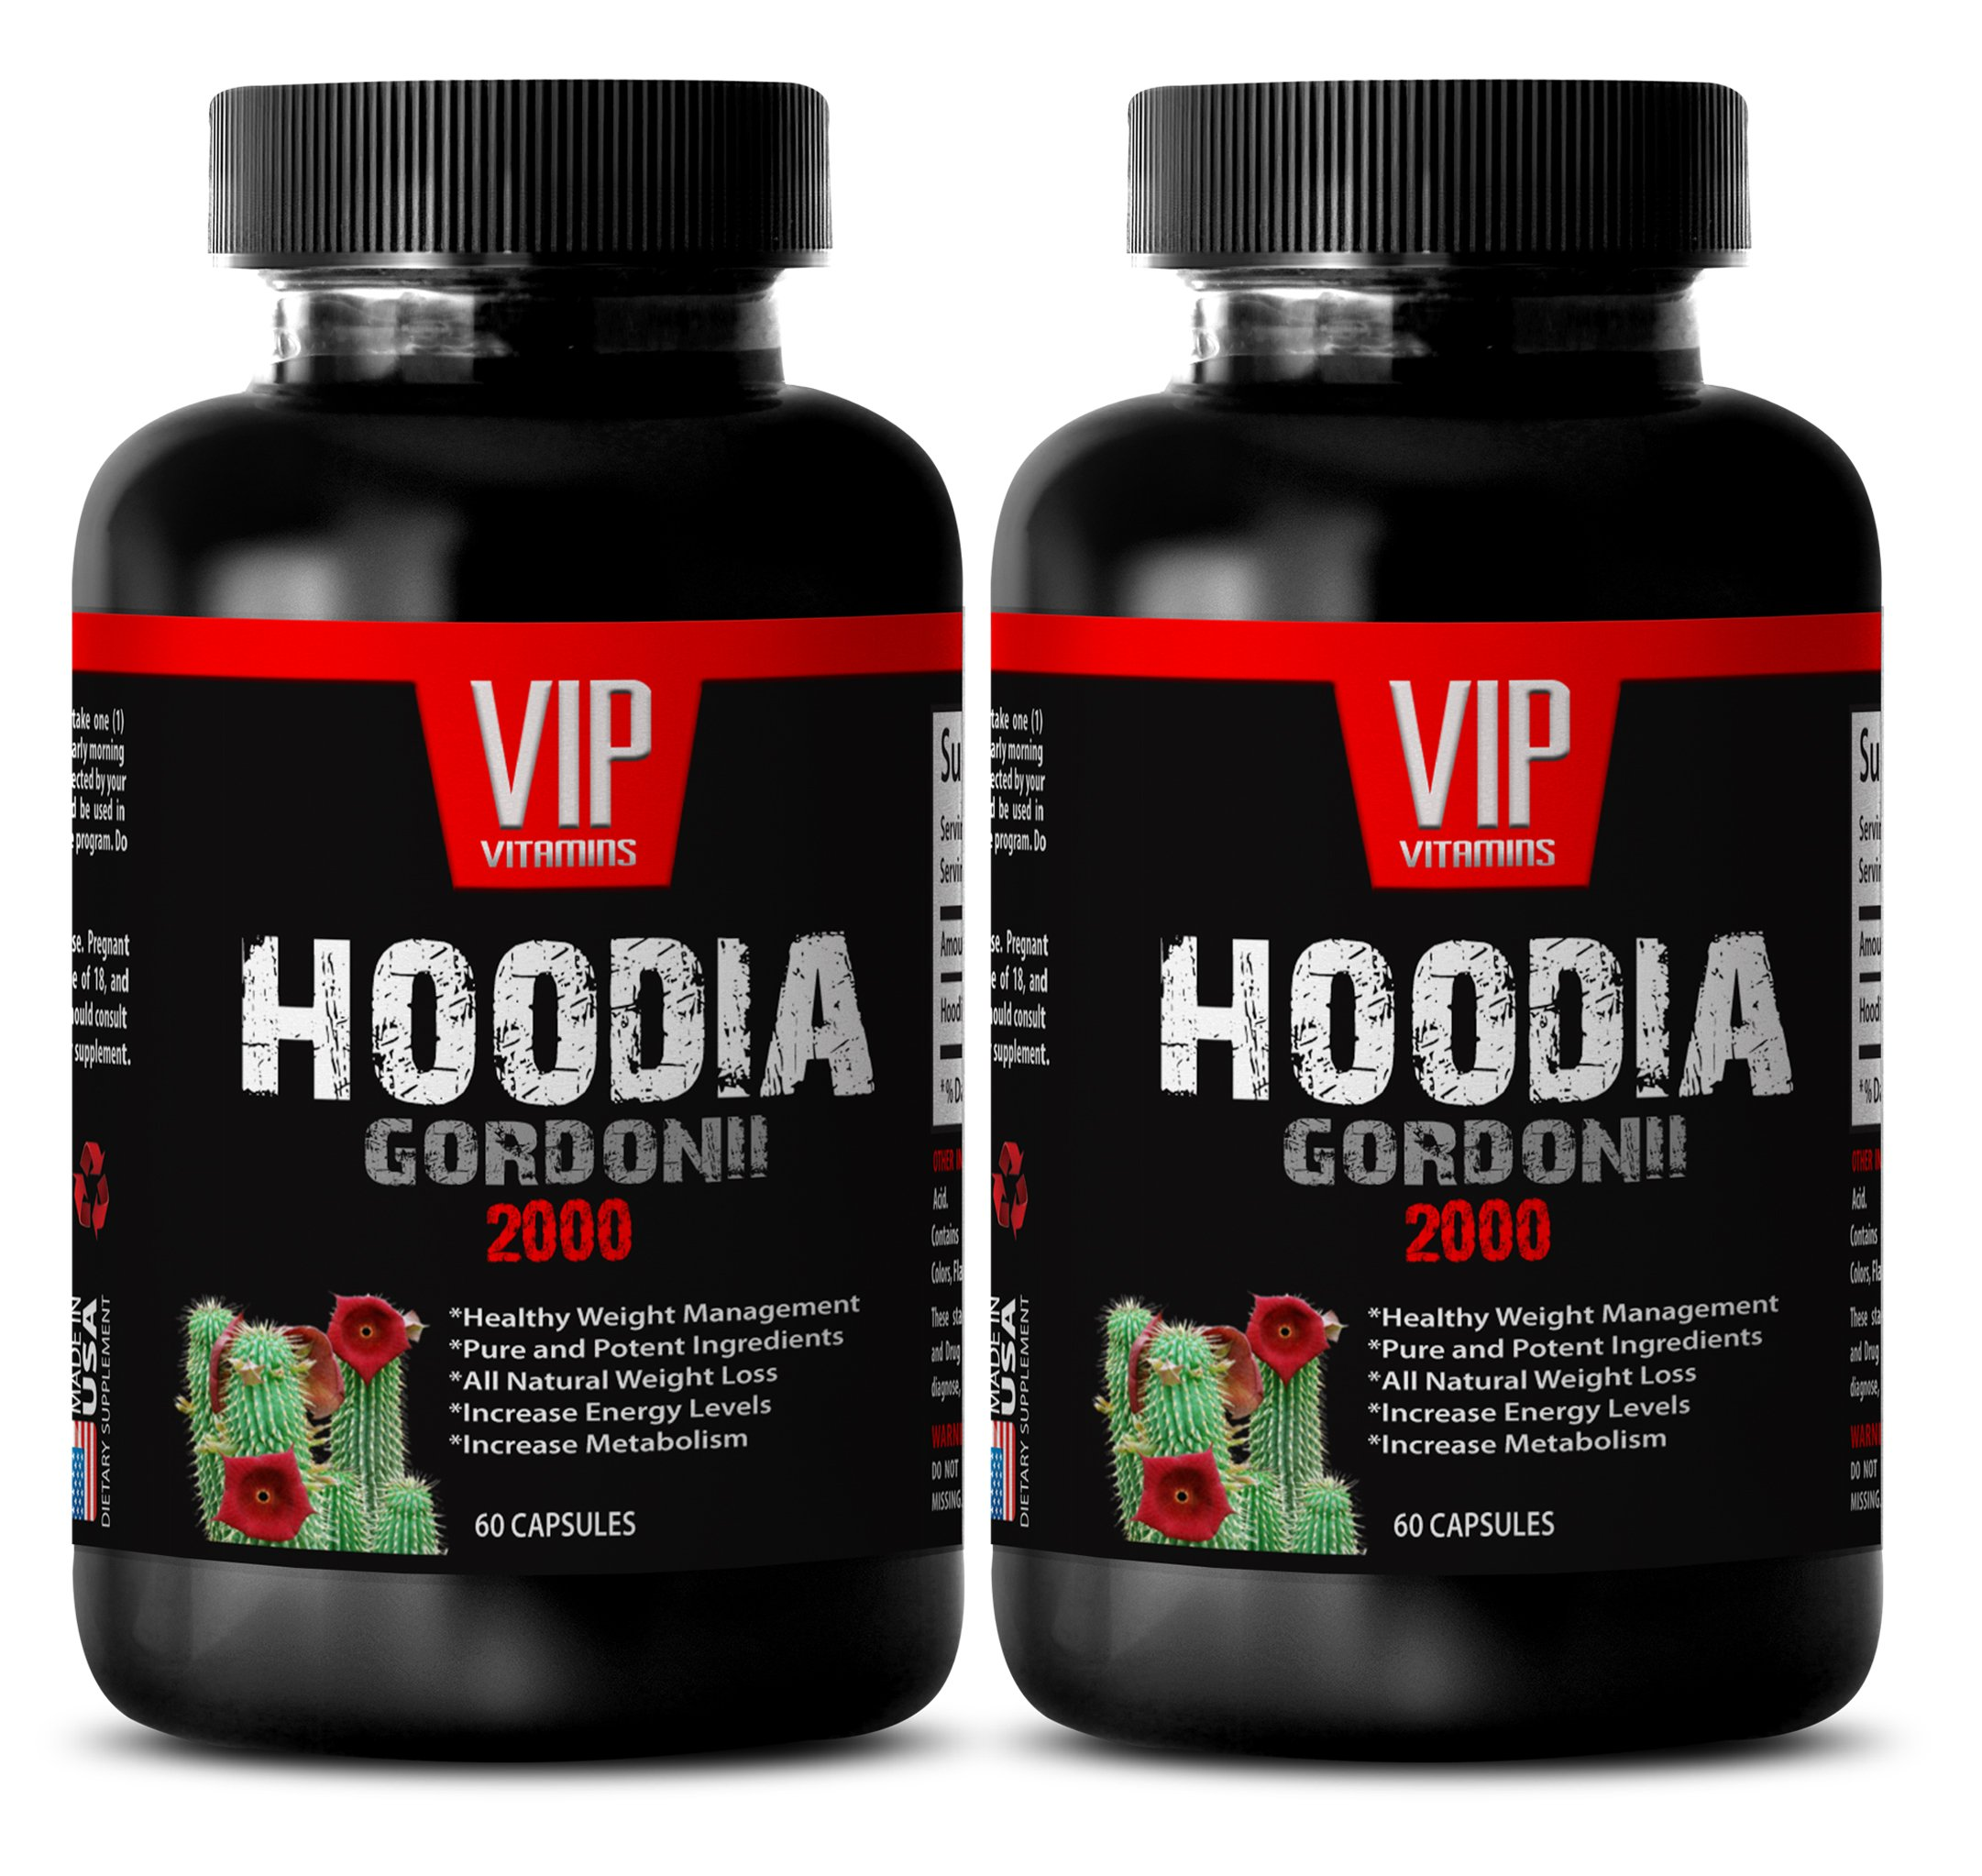 Fat loss energy pills - HOODIA GORDONII EXTRACT 2000 - Hoodia p57 slimming - 2 Bottles 120 Tablets by VIP Supplements (Image #1)